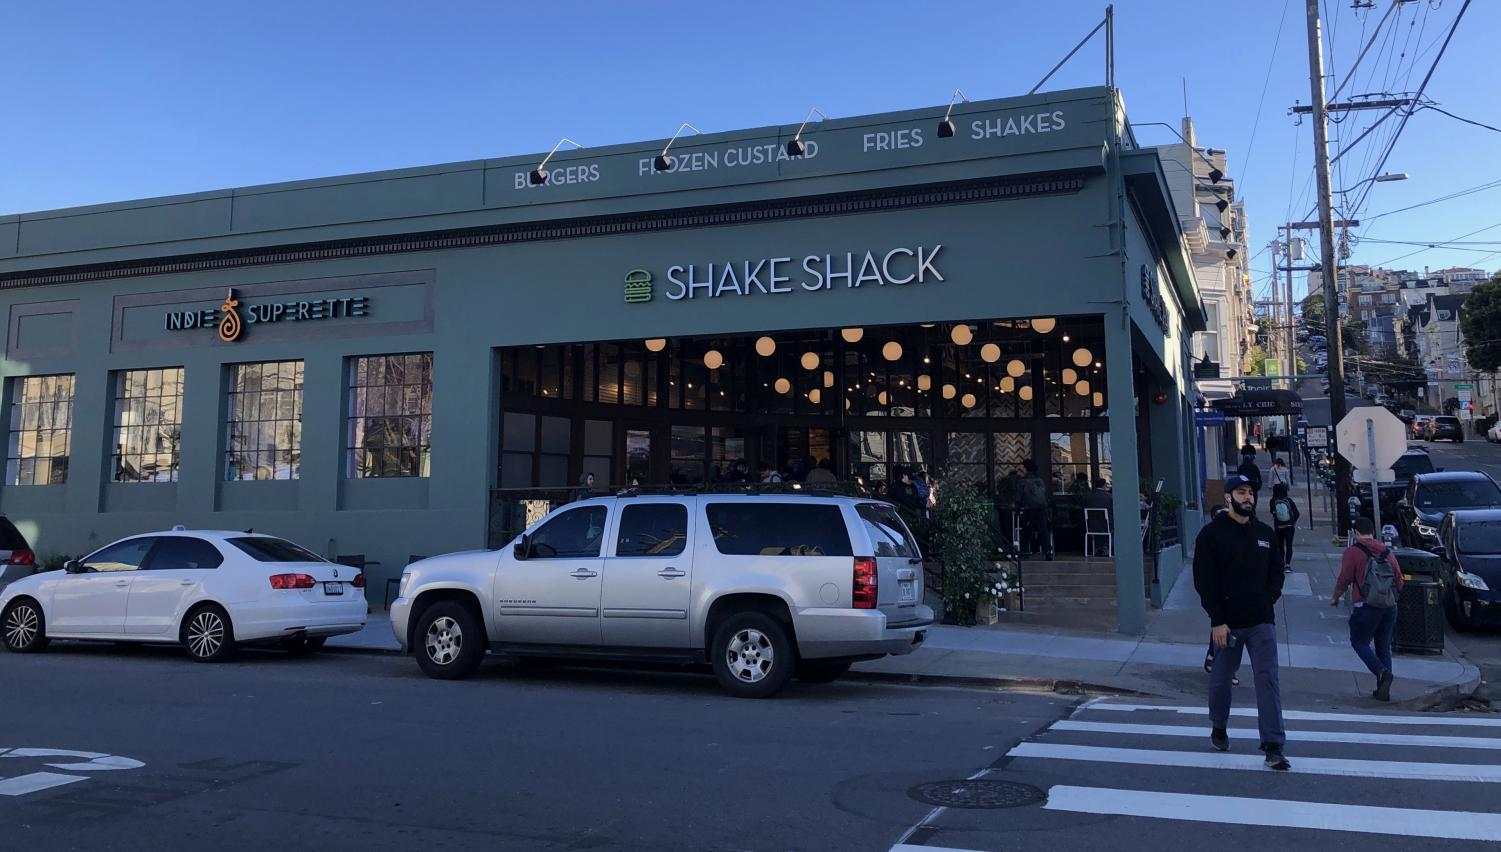 Shake Shack's new Cow Hollow location is now open for business as of Feb. 3. Shake Shack has over 280 locations worldwide and this is the fourth location to open in San Francisco.